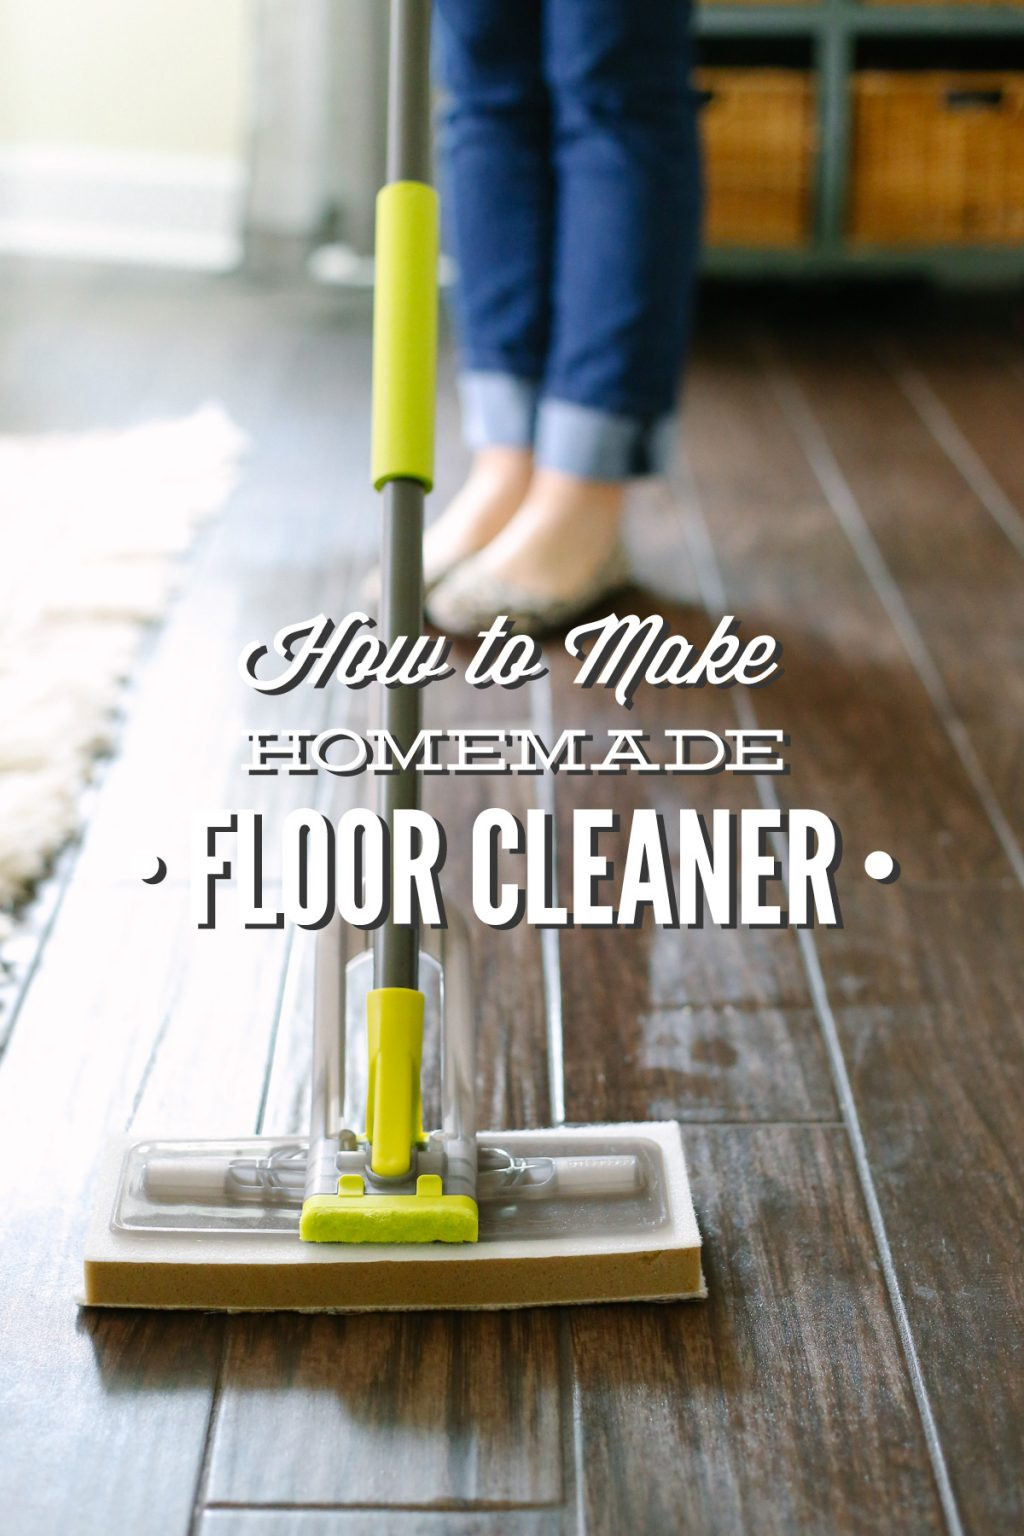 how do i clean hardwood floors with vinegar of cleaning machine how to make homemade floor cleaner vinegar based with regard to how to make homemade floor cleaner vinegar based live simply cleaning machine best